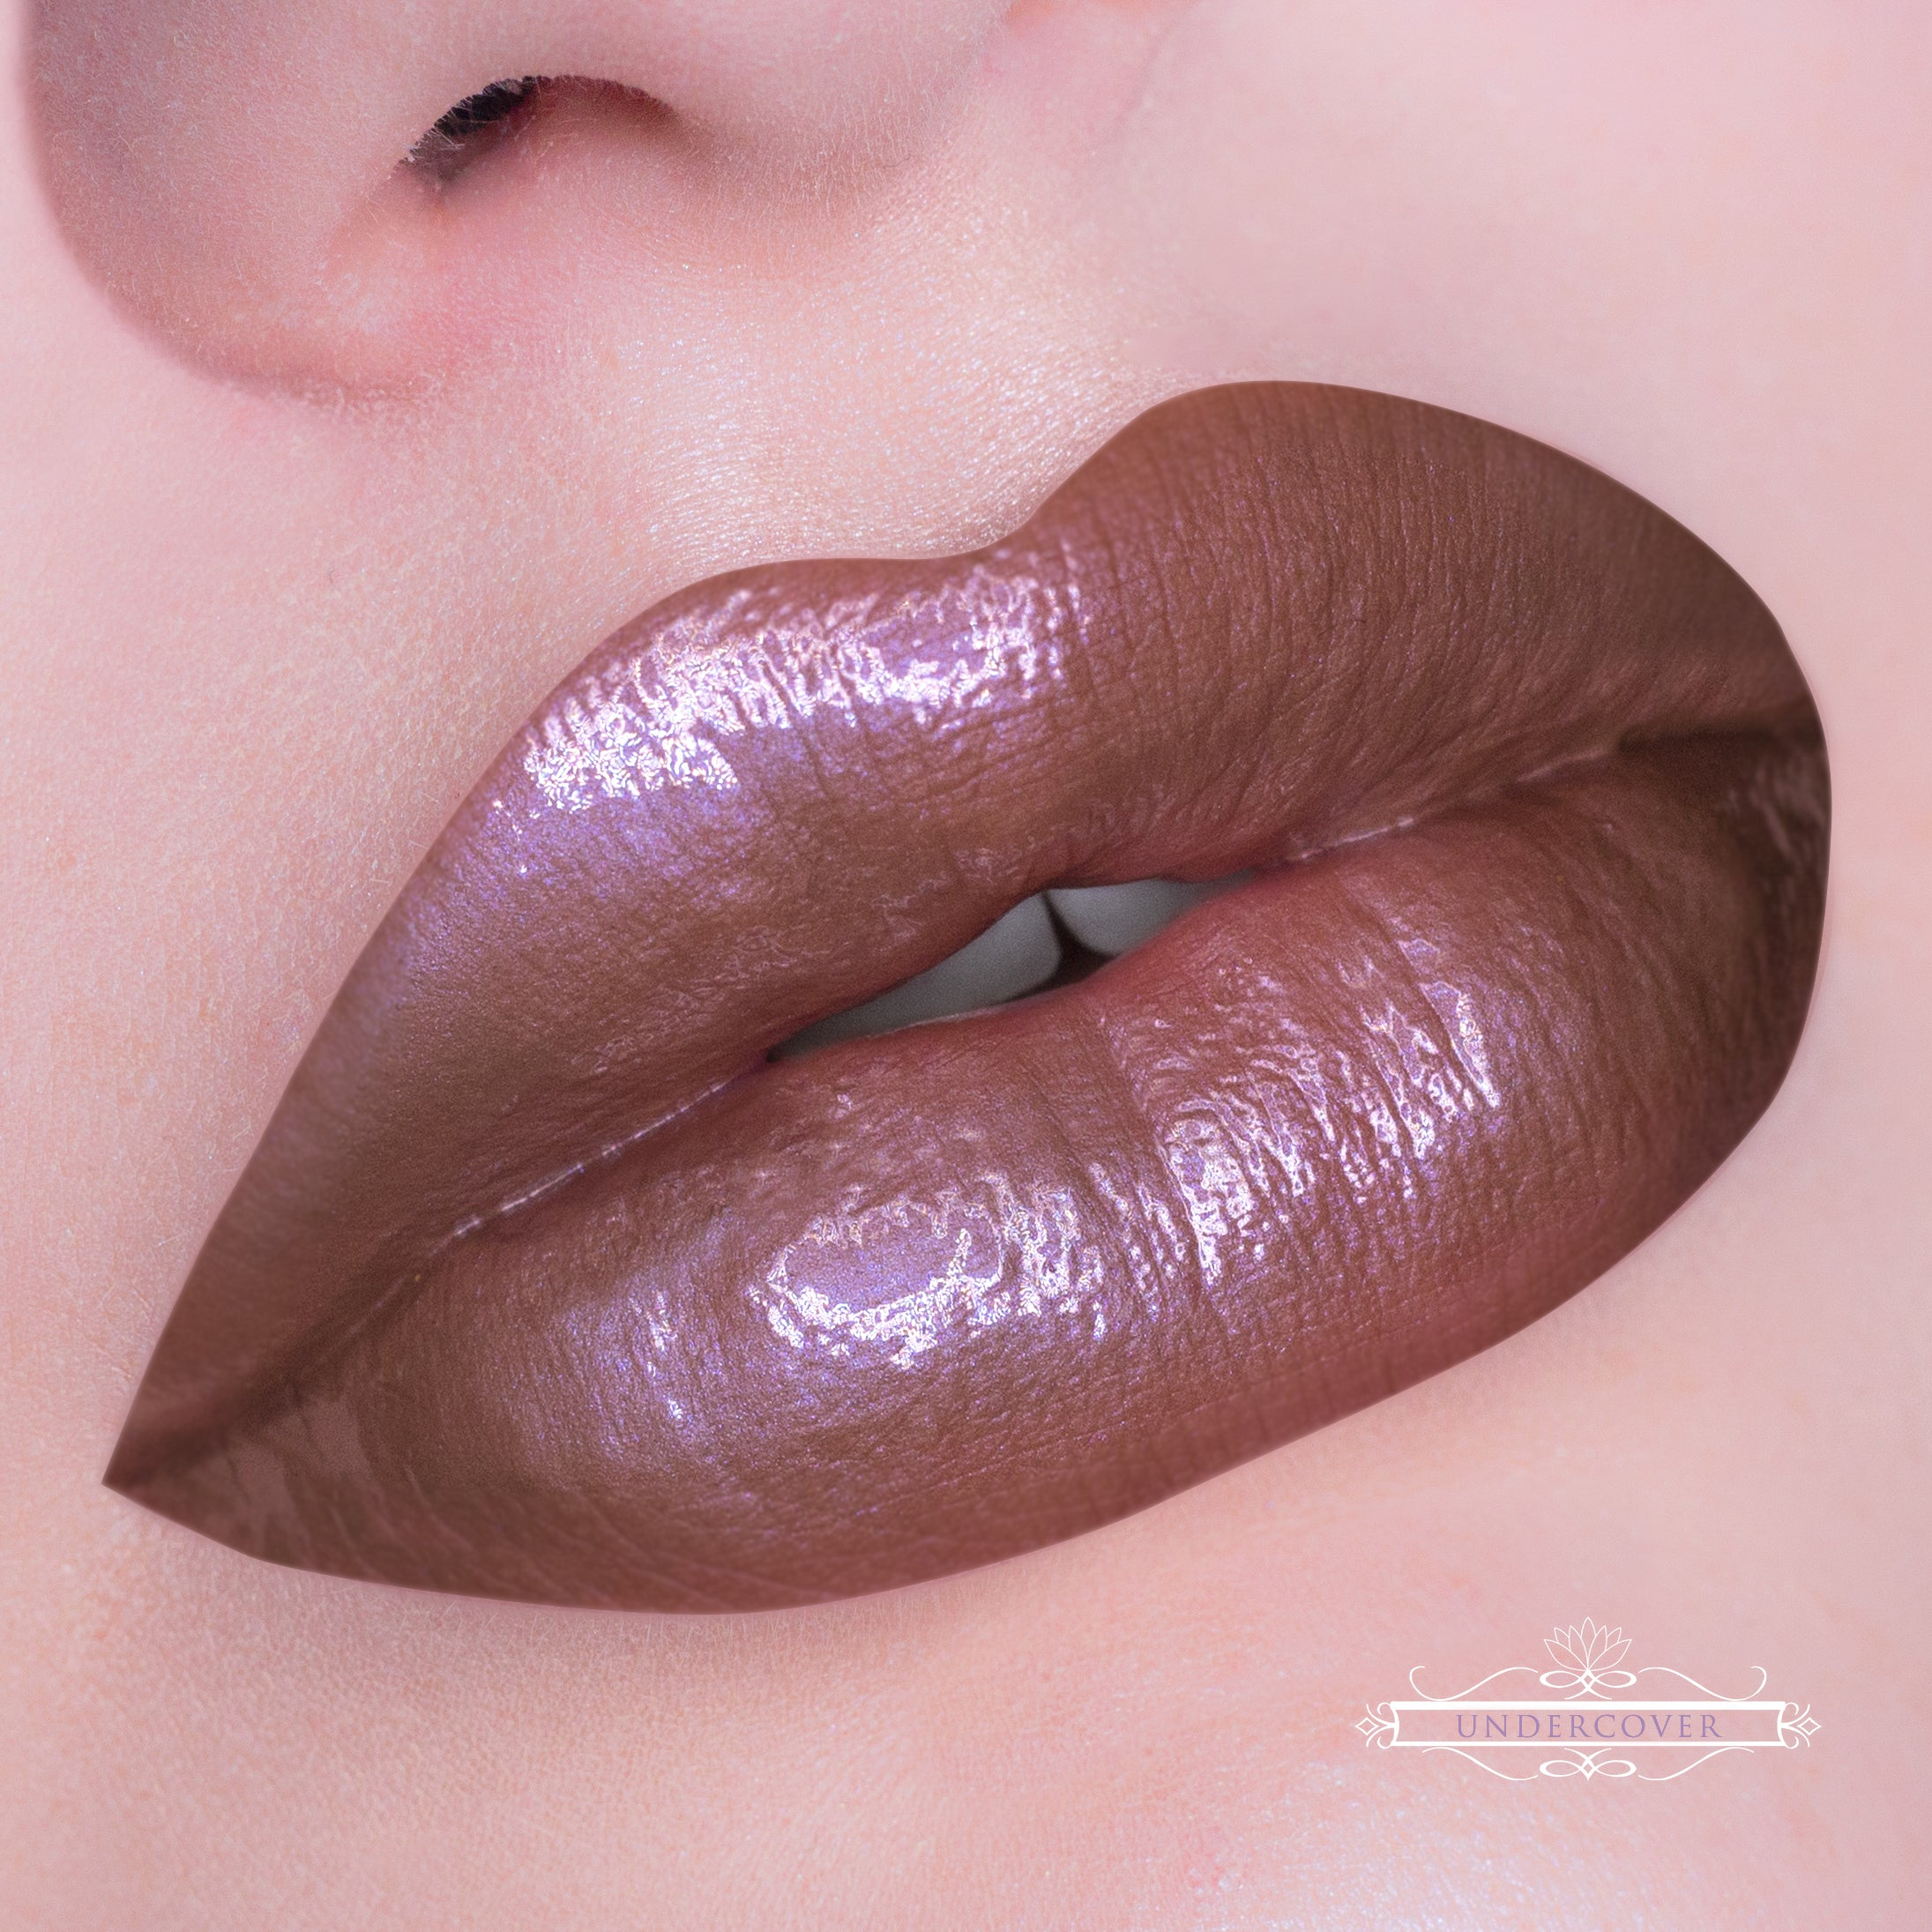 House of Beauty Lip Hybrid - Undercover